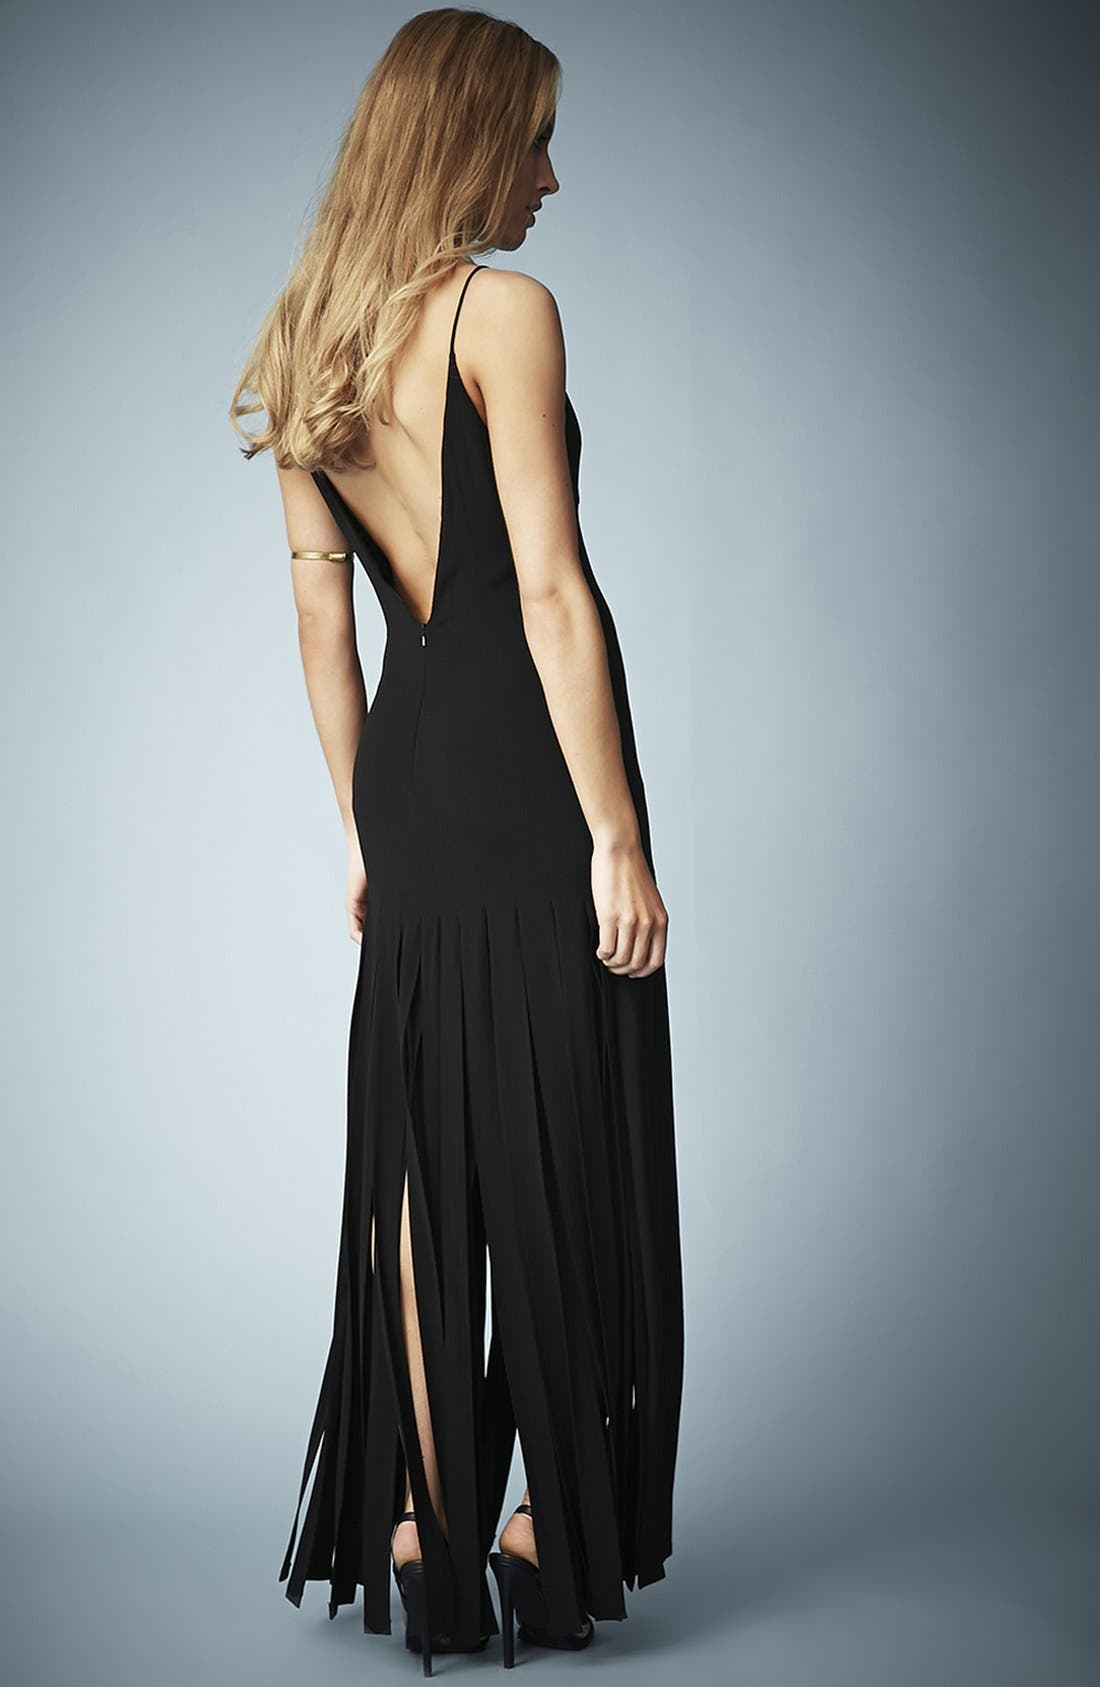 Kate Moss for Topshop Splice Skirt Maxi Dress,                             Alternate thumbnail 9, color,